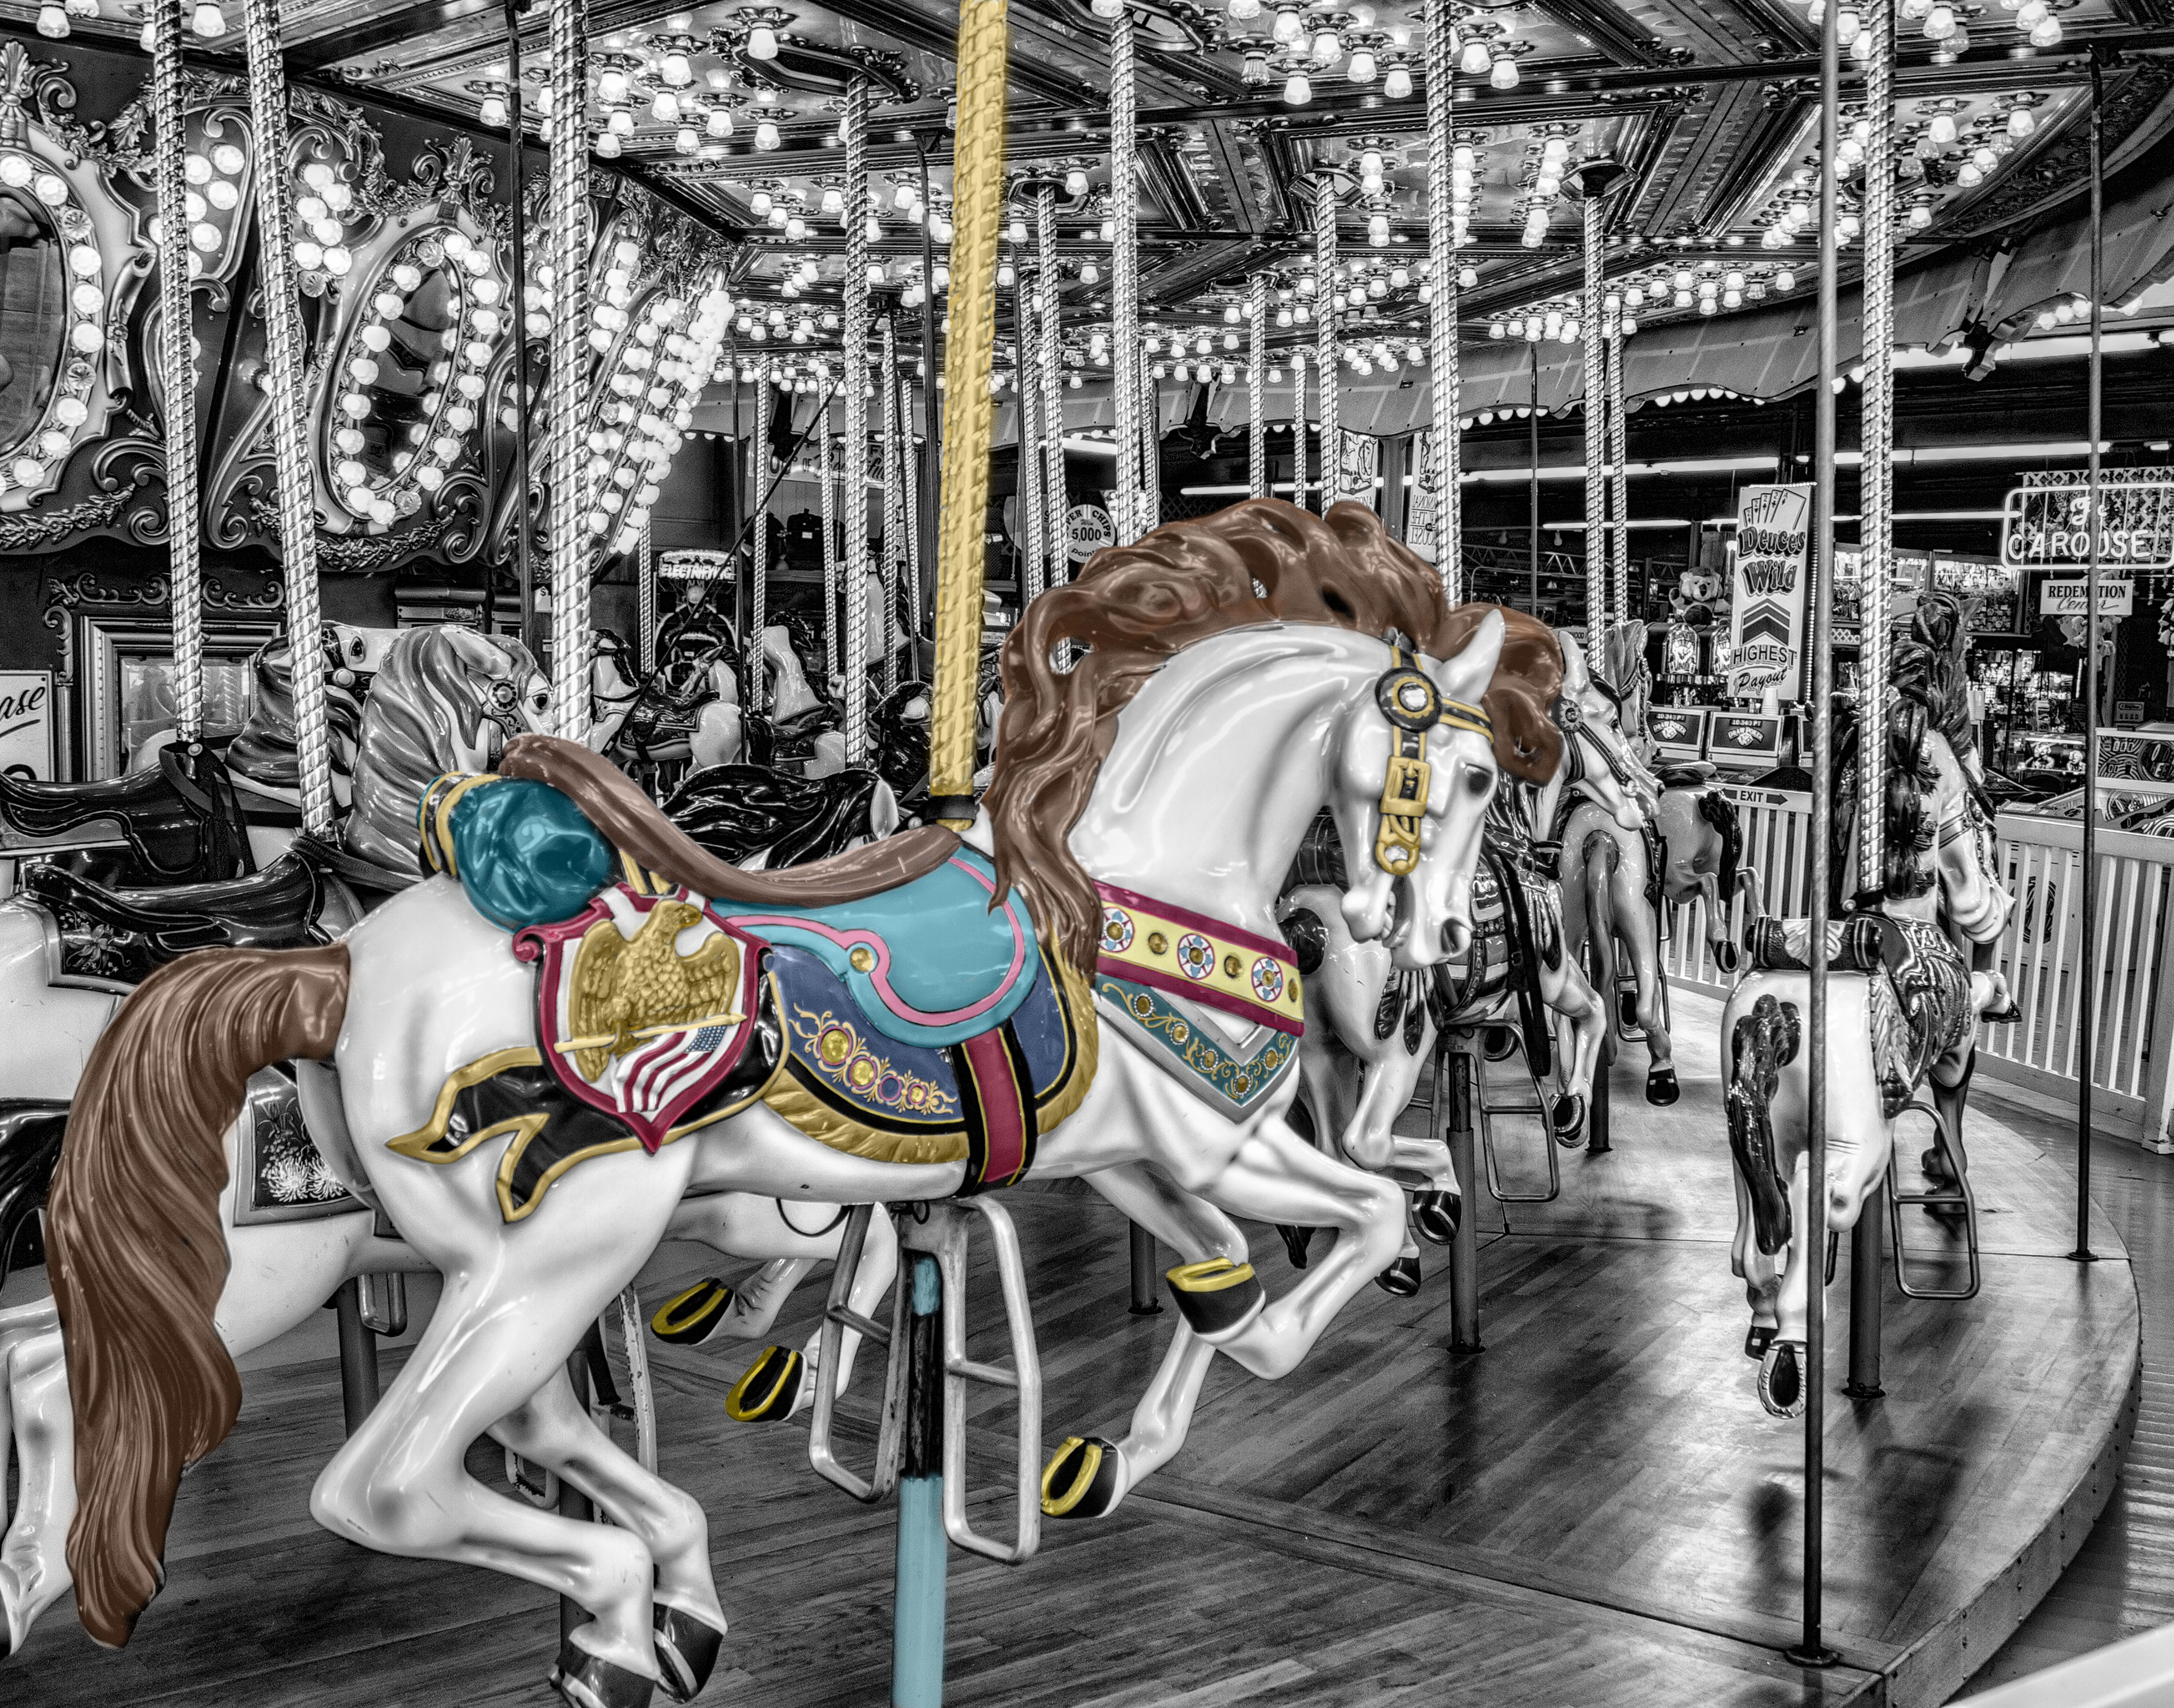 Samsung Galaxy Wallpaper Hd Free Stock Photo Of Carousel Fun Fair Funfair